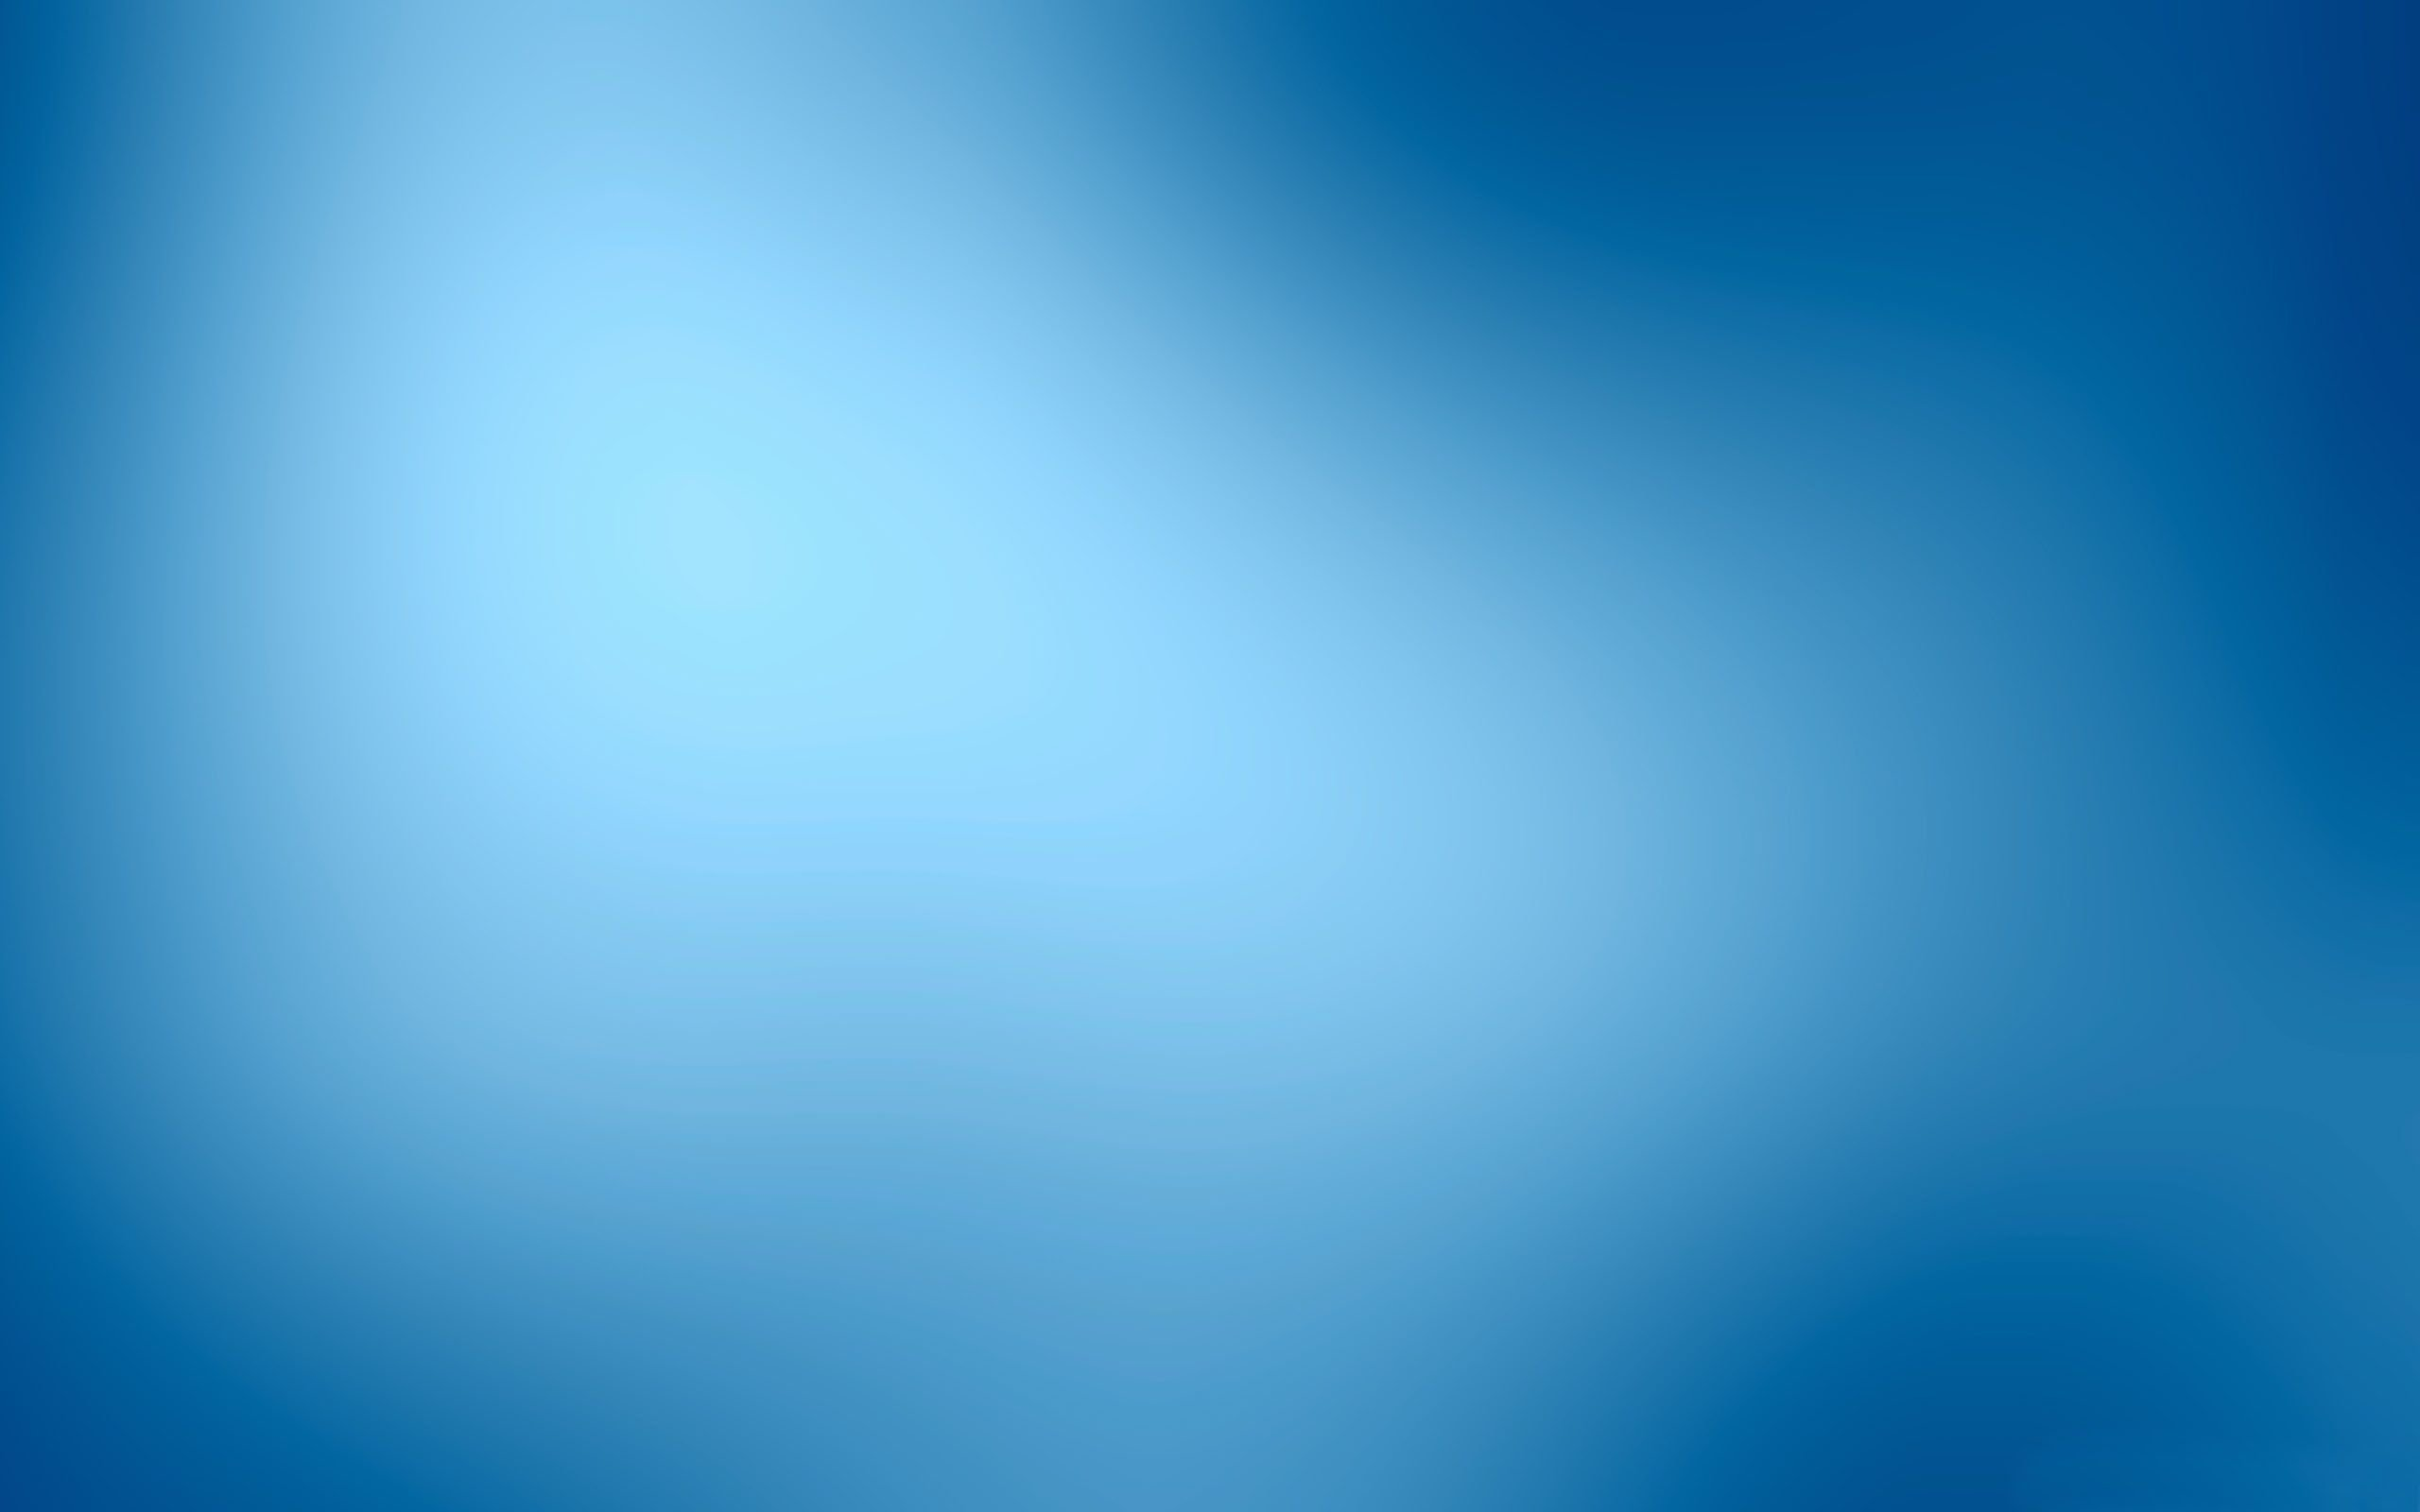 Simple blue wallpaper wallpapersafari for Plain background images for photoshop